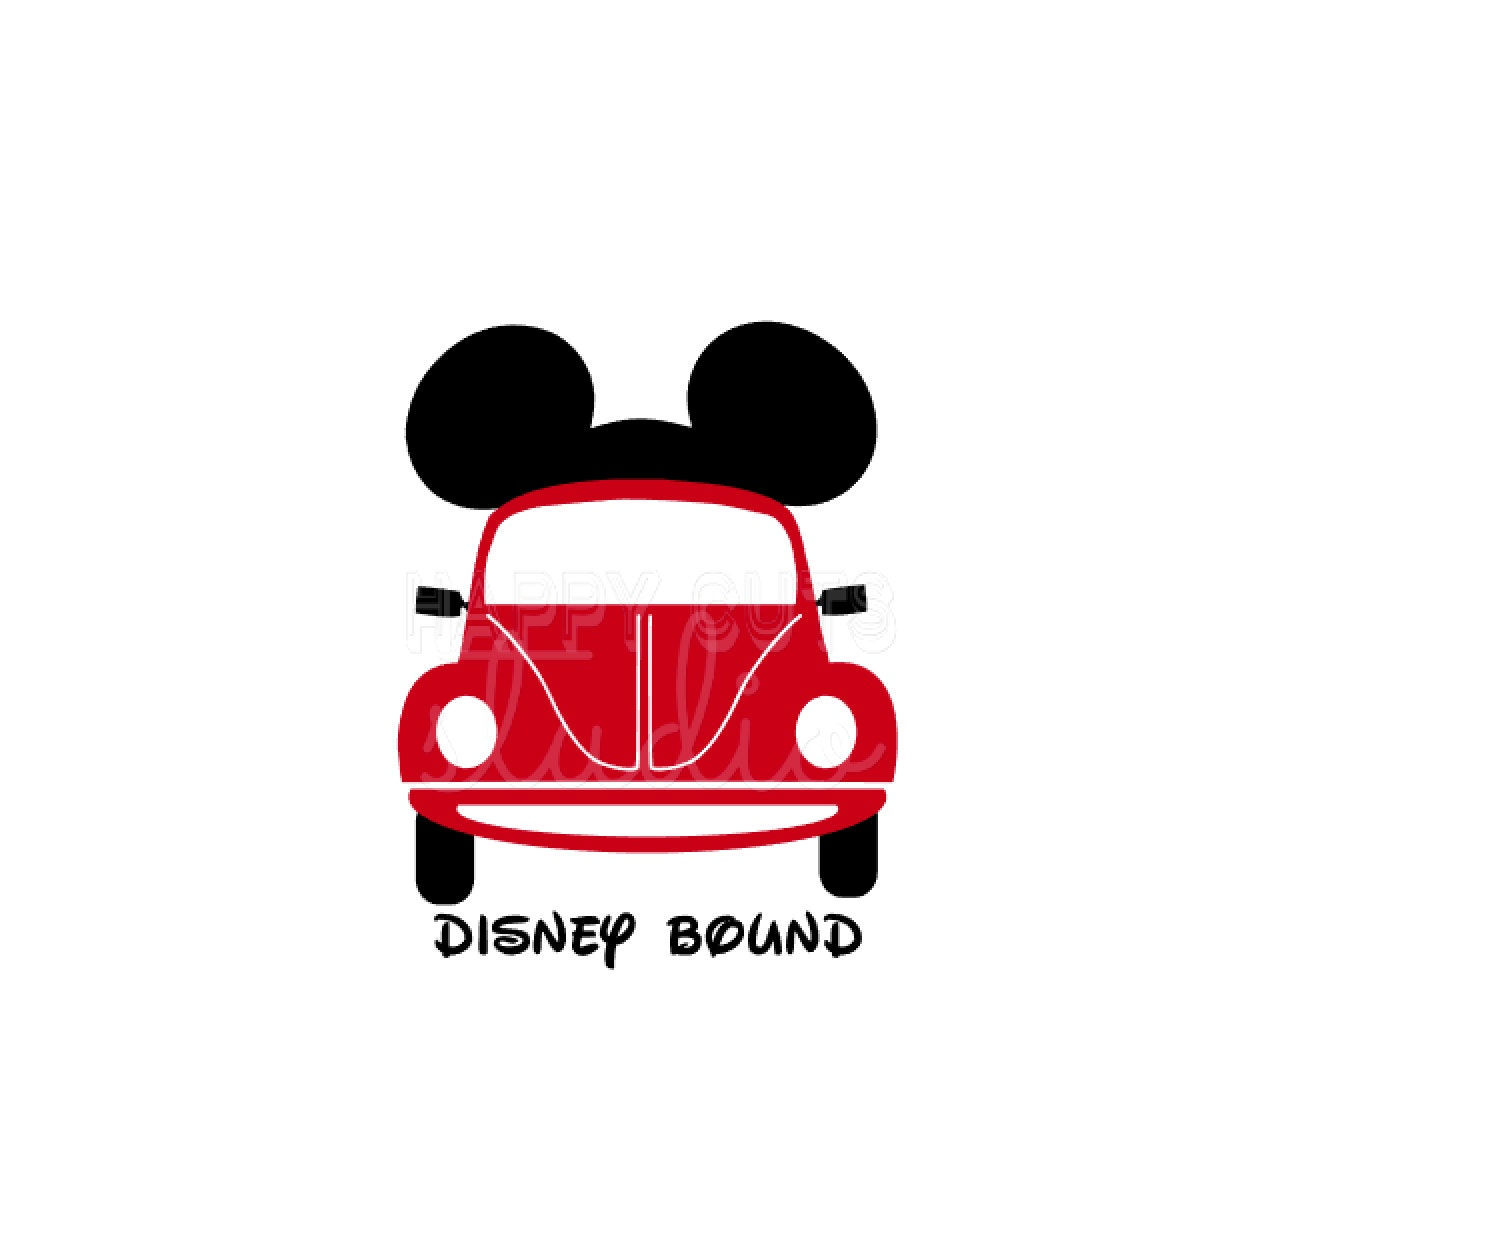 50 50 details about retro classic mickey mouse walt disney disneyland wall car window decal sticker 50